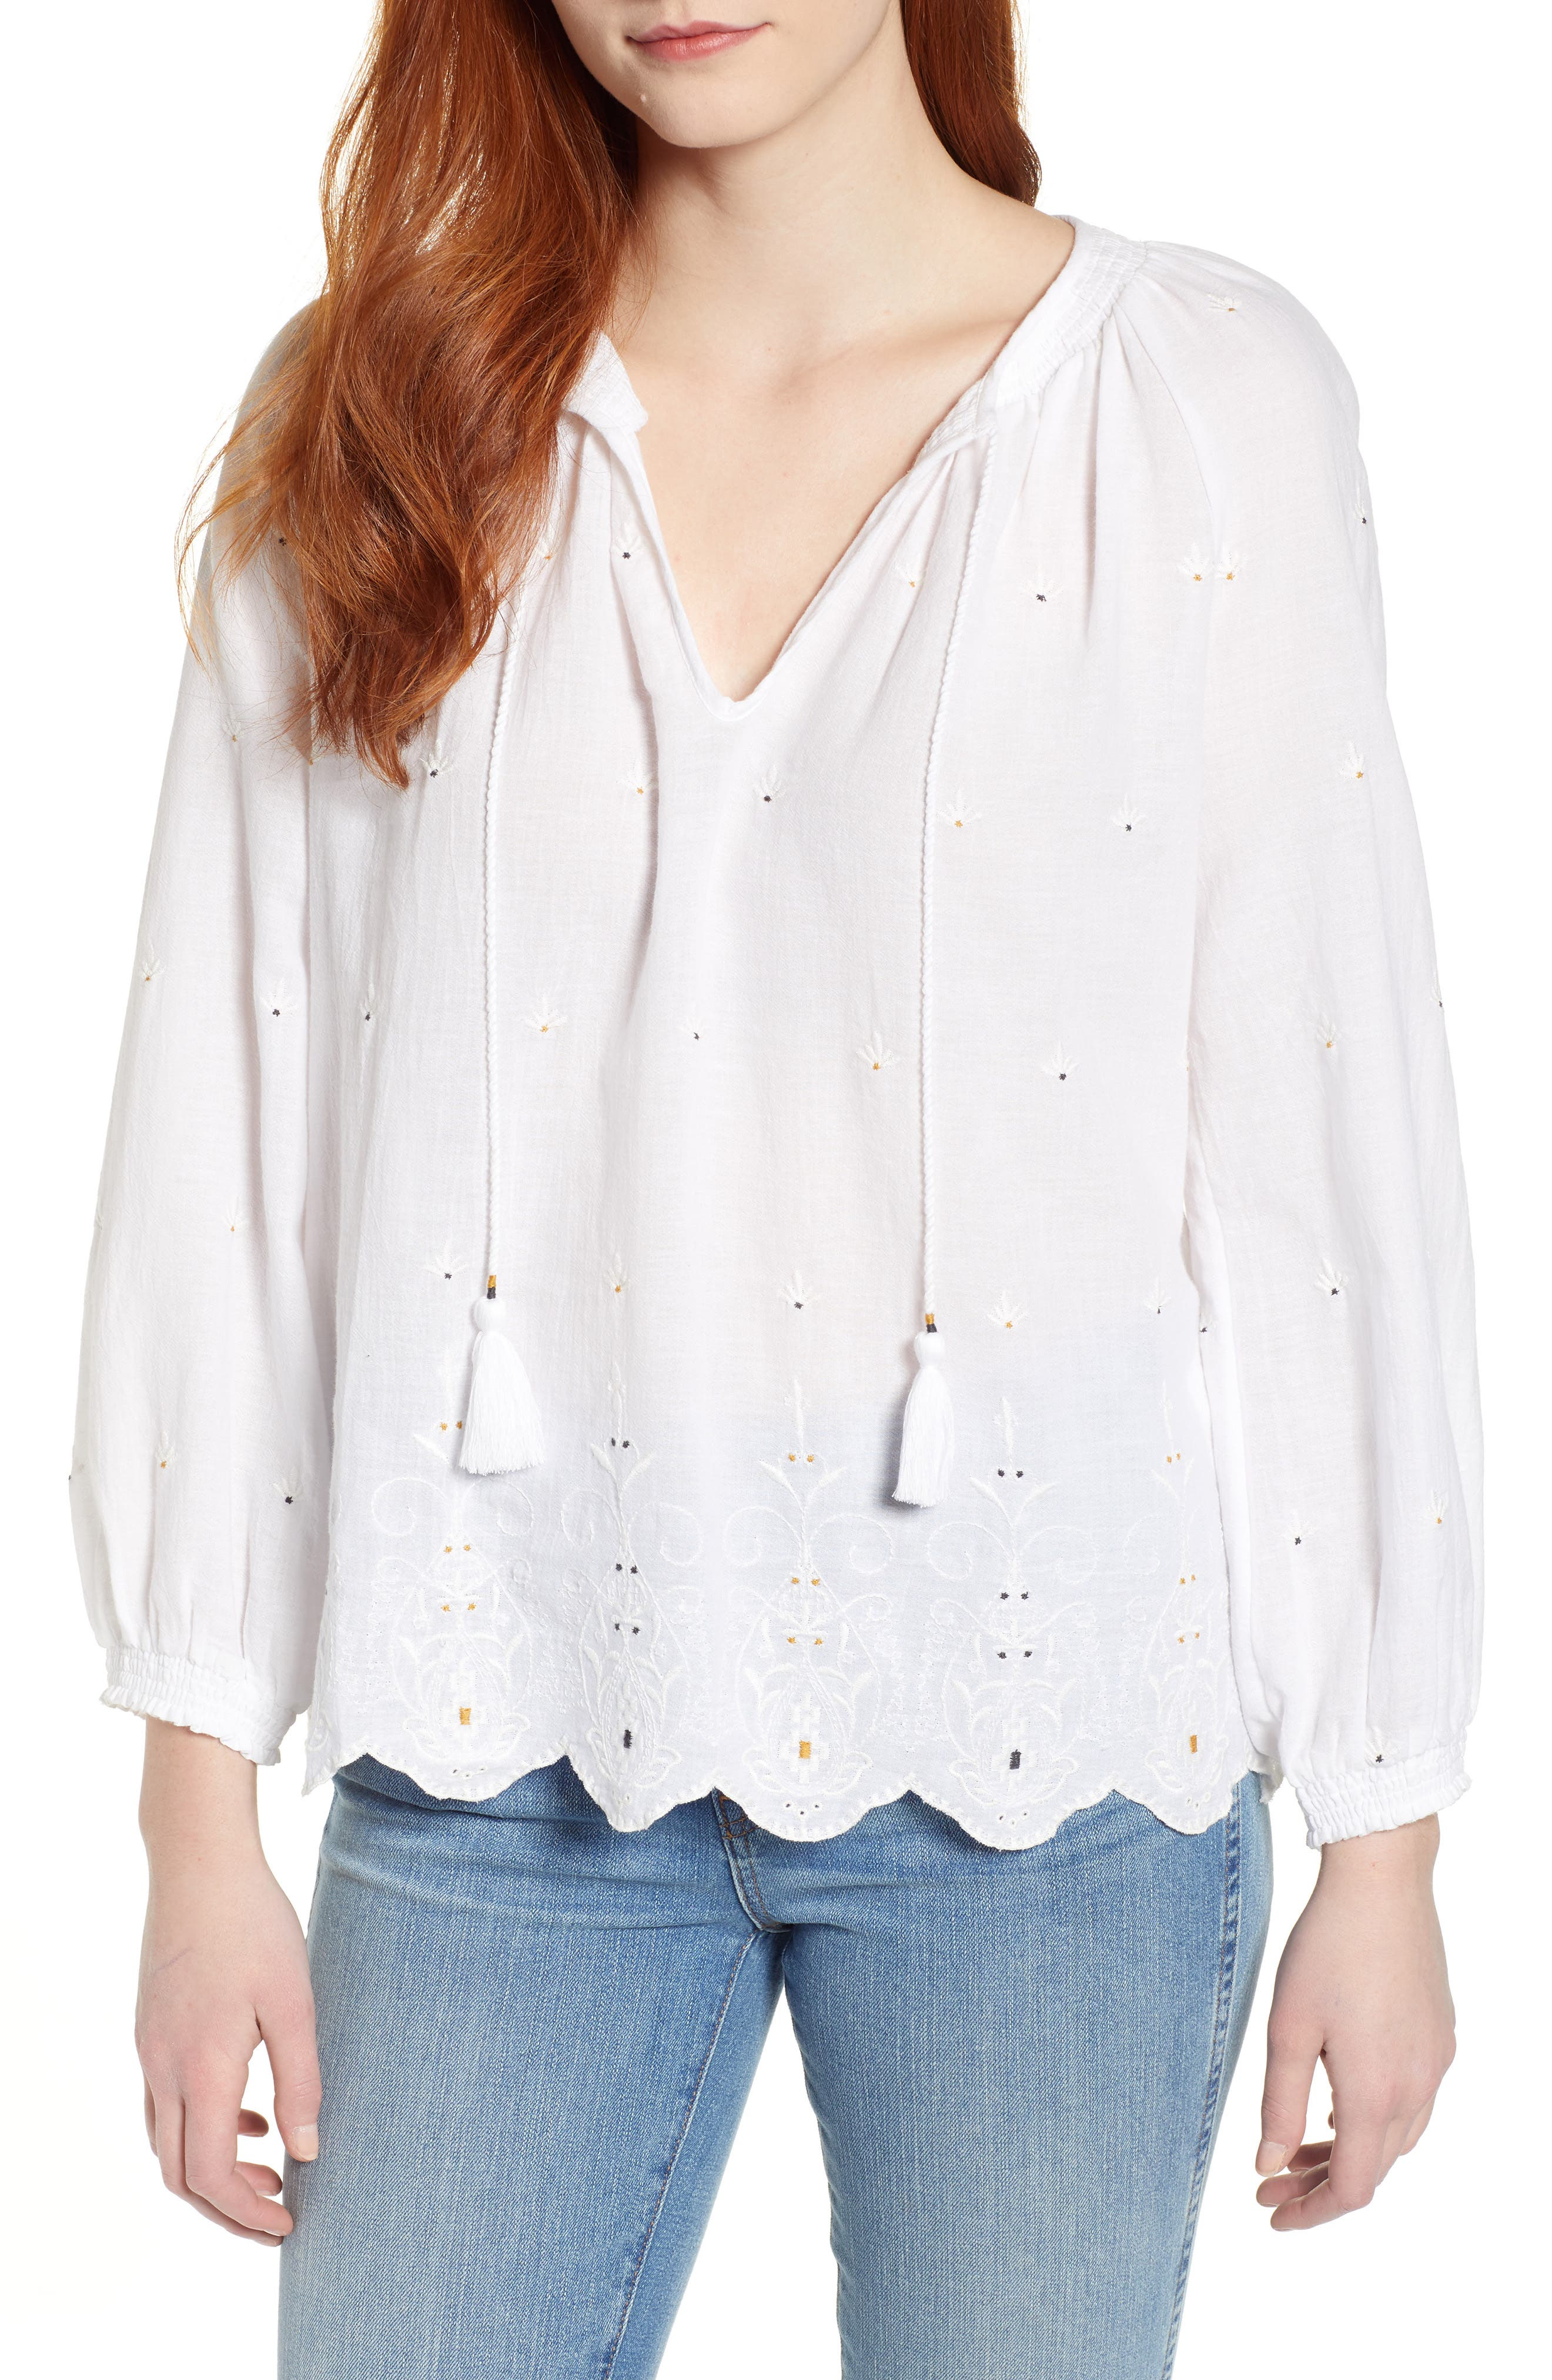 LUCKY BRAND Eyelet Peasant Top, Main, color, LUCKY WHITE